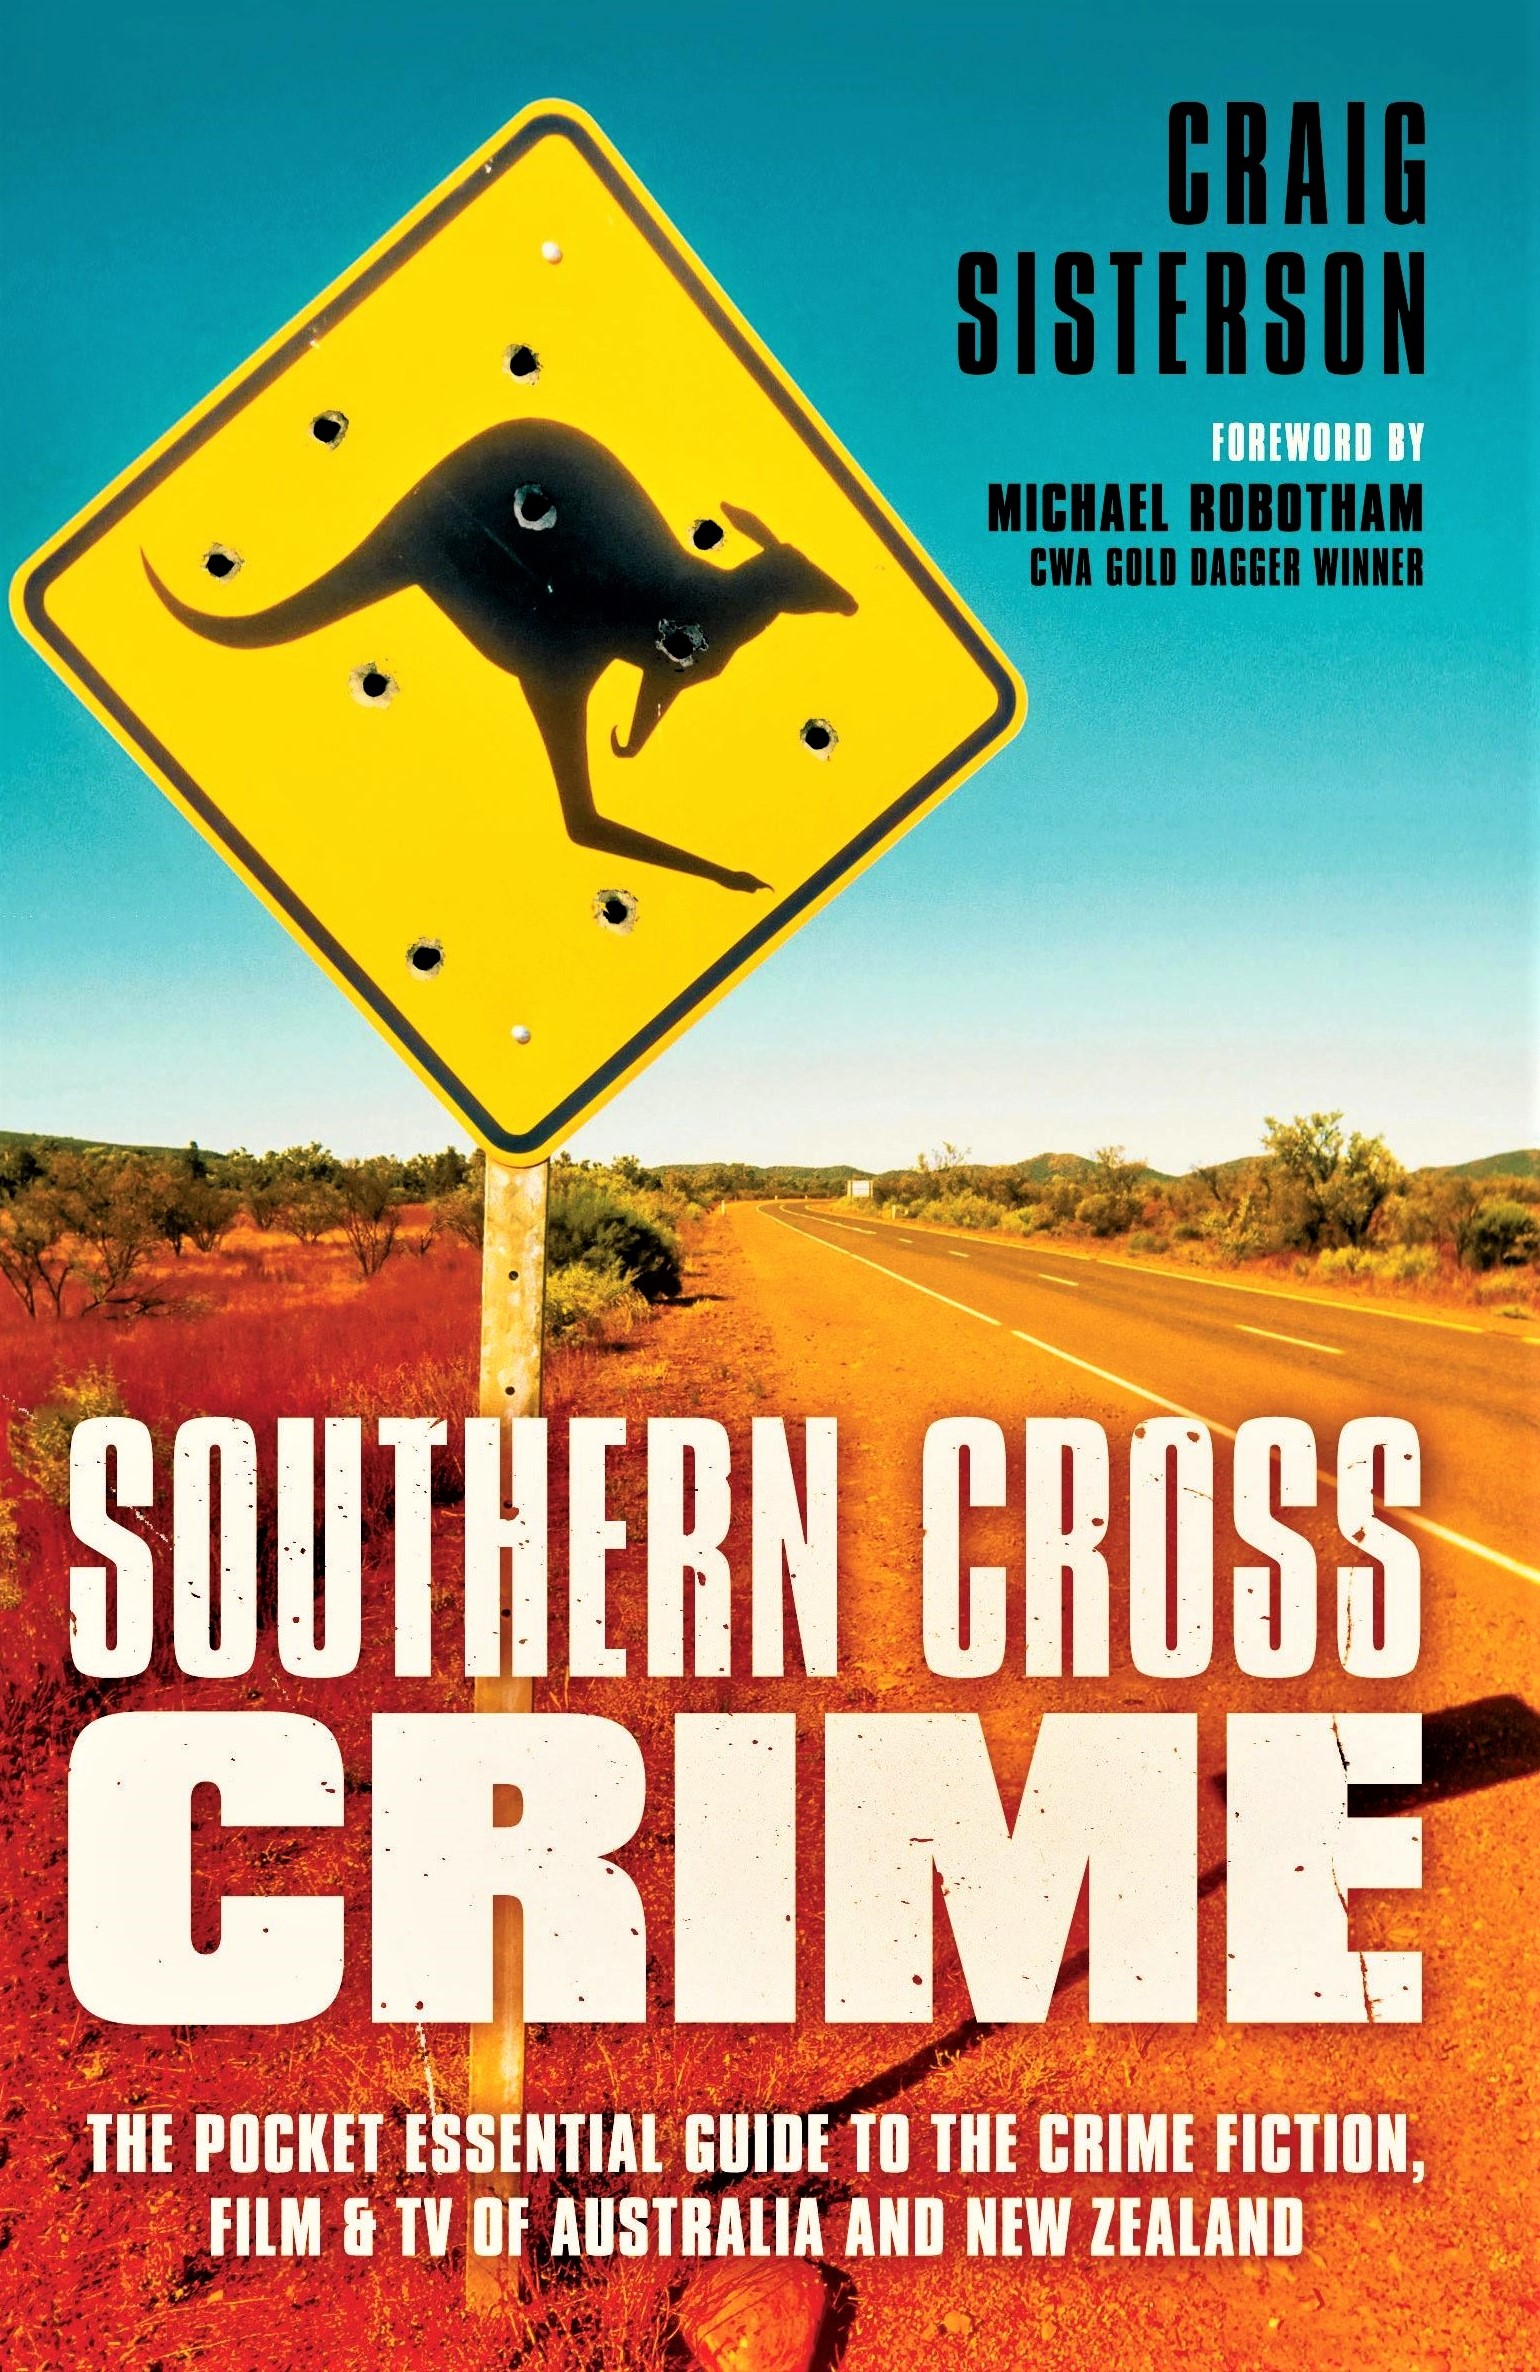 Southern Cross Crime: The Pocket Essential Guide to the Crime Fiction, Film & TV of Australia and New Zealand